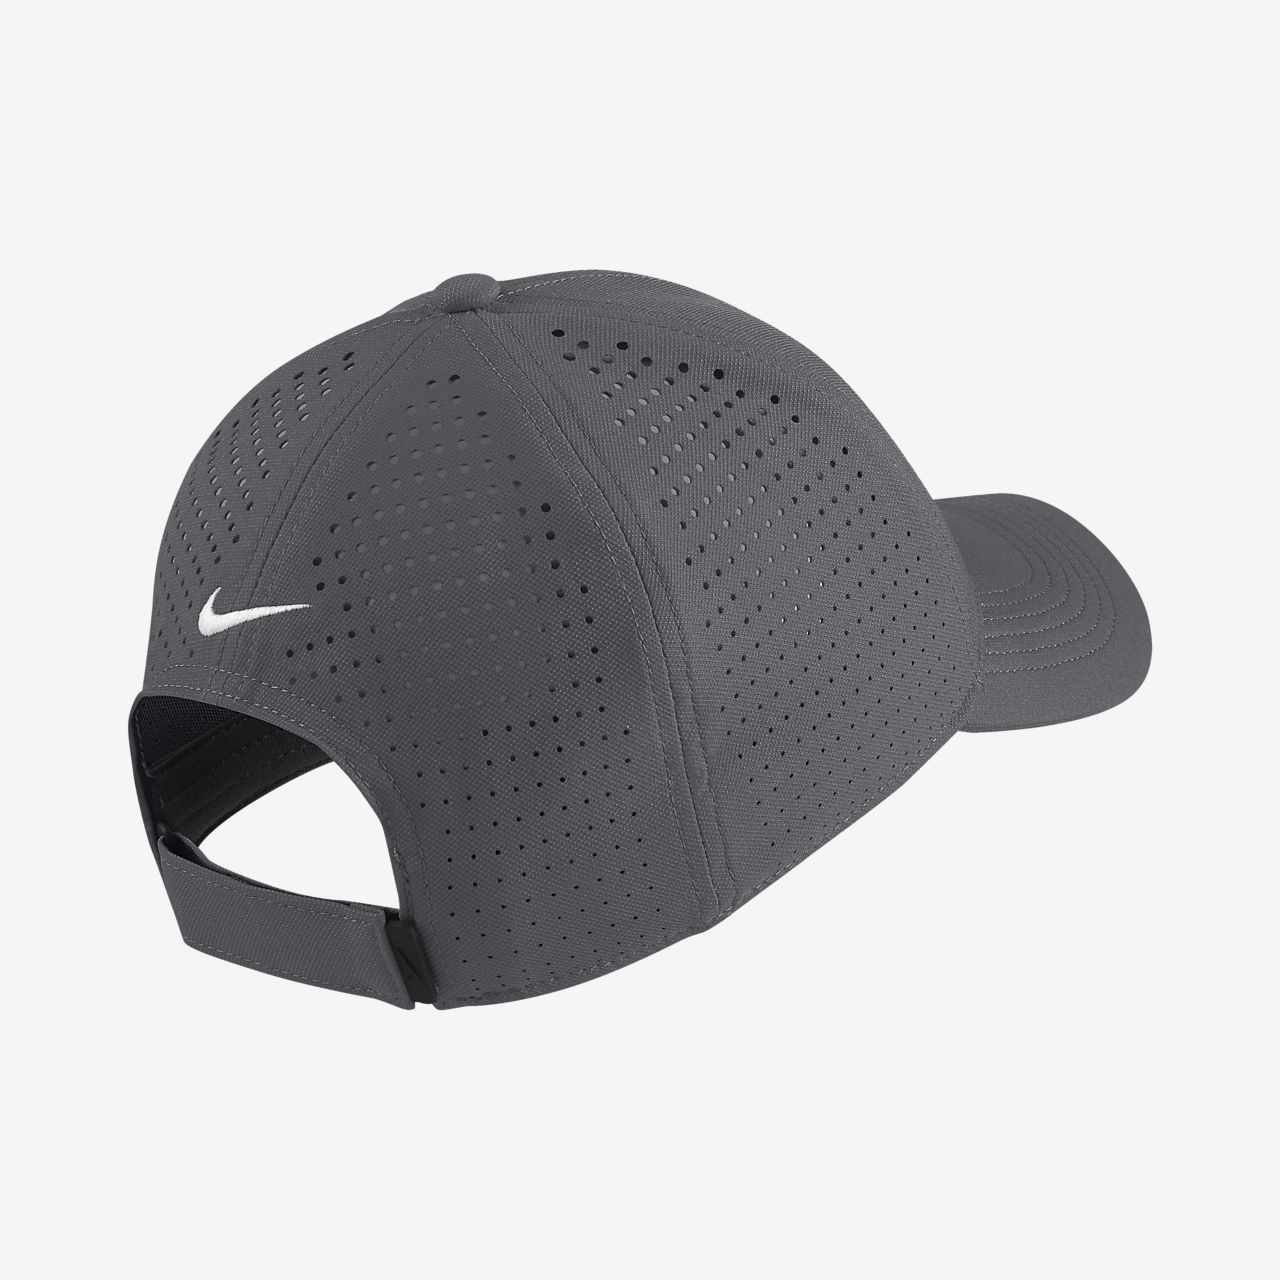 f8fd129269c Nike Legacy 91 Perforated Adjustable Golf Hat. Nike.com